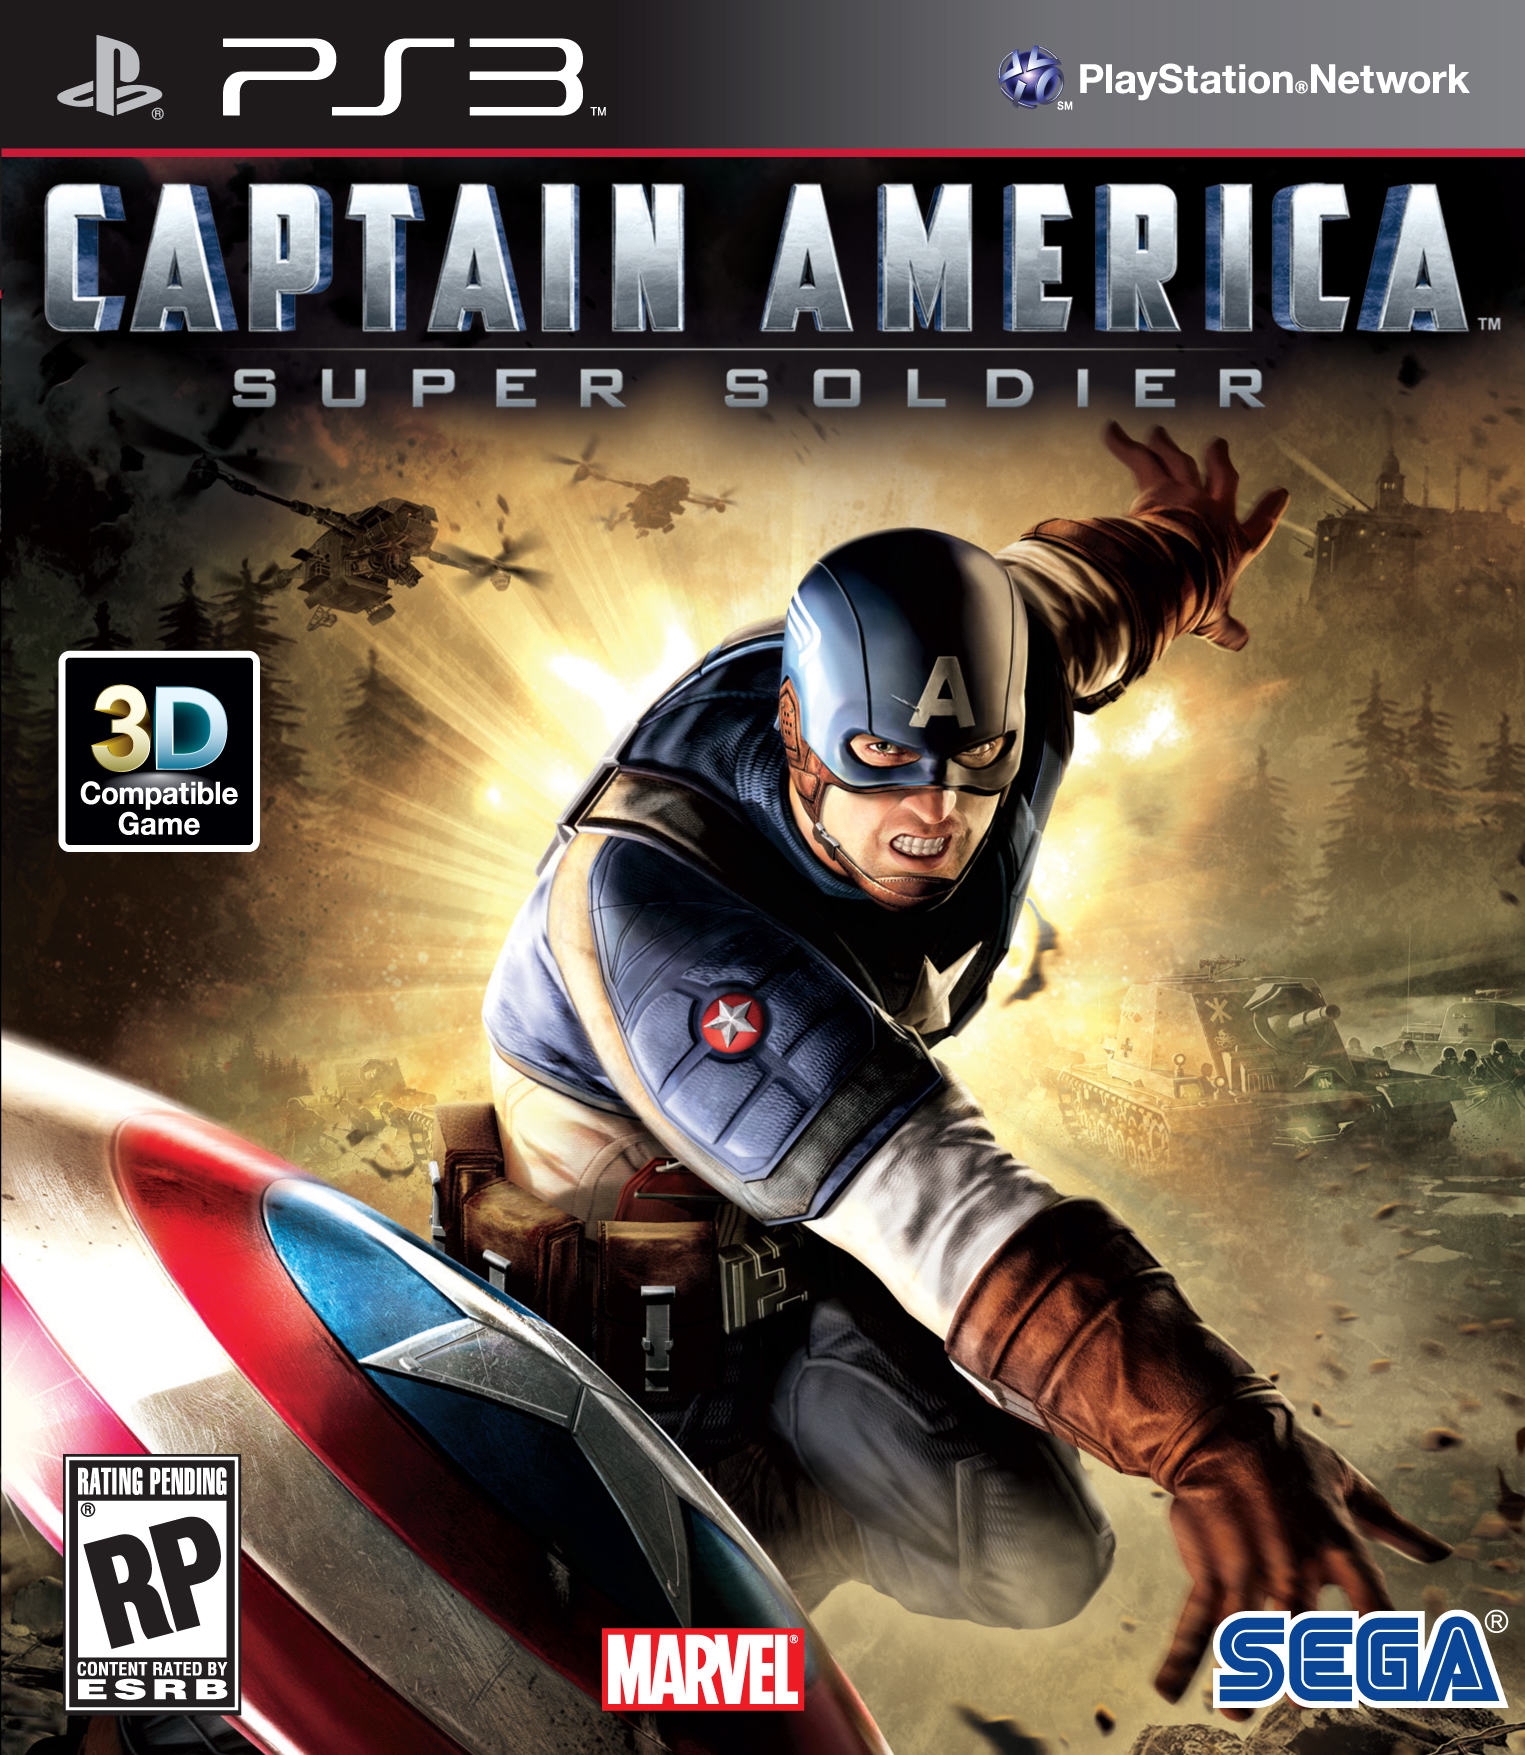 New Playstation 3 Games : Captain america super soldier game review the geek